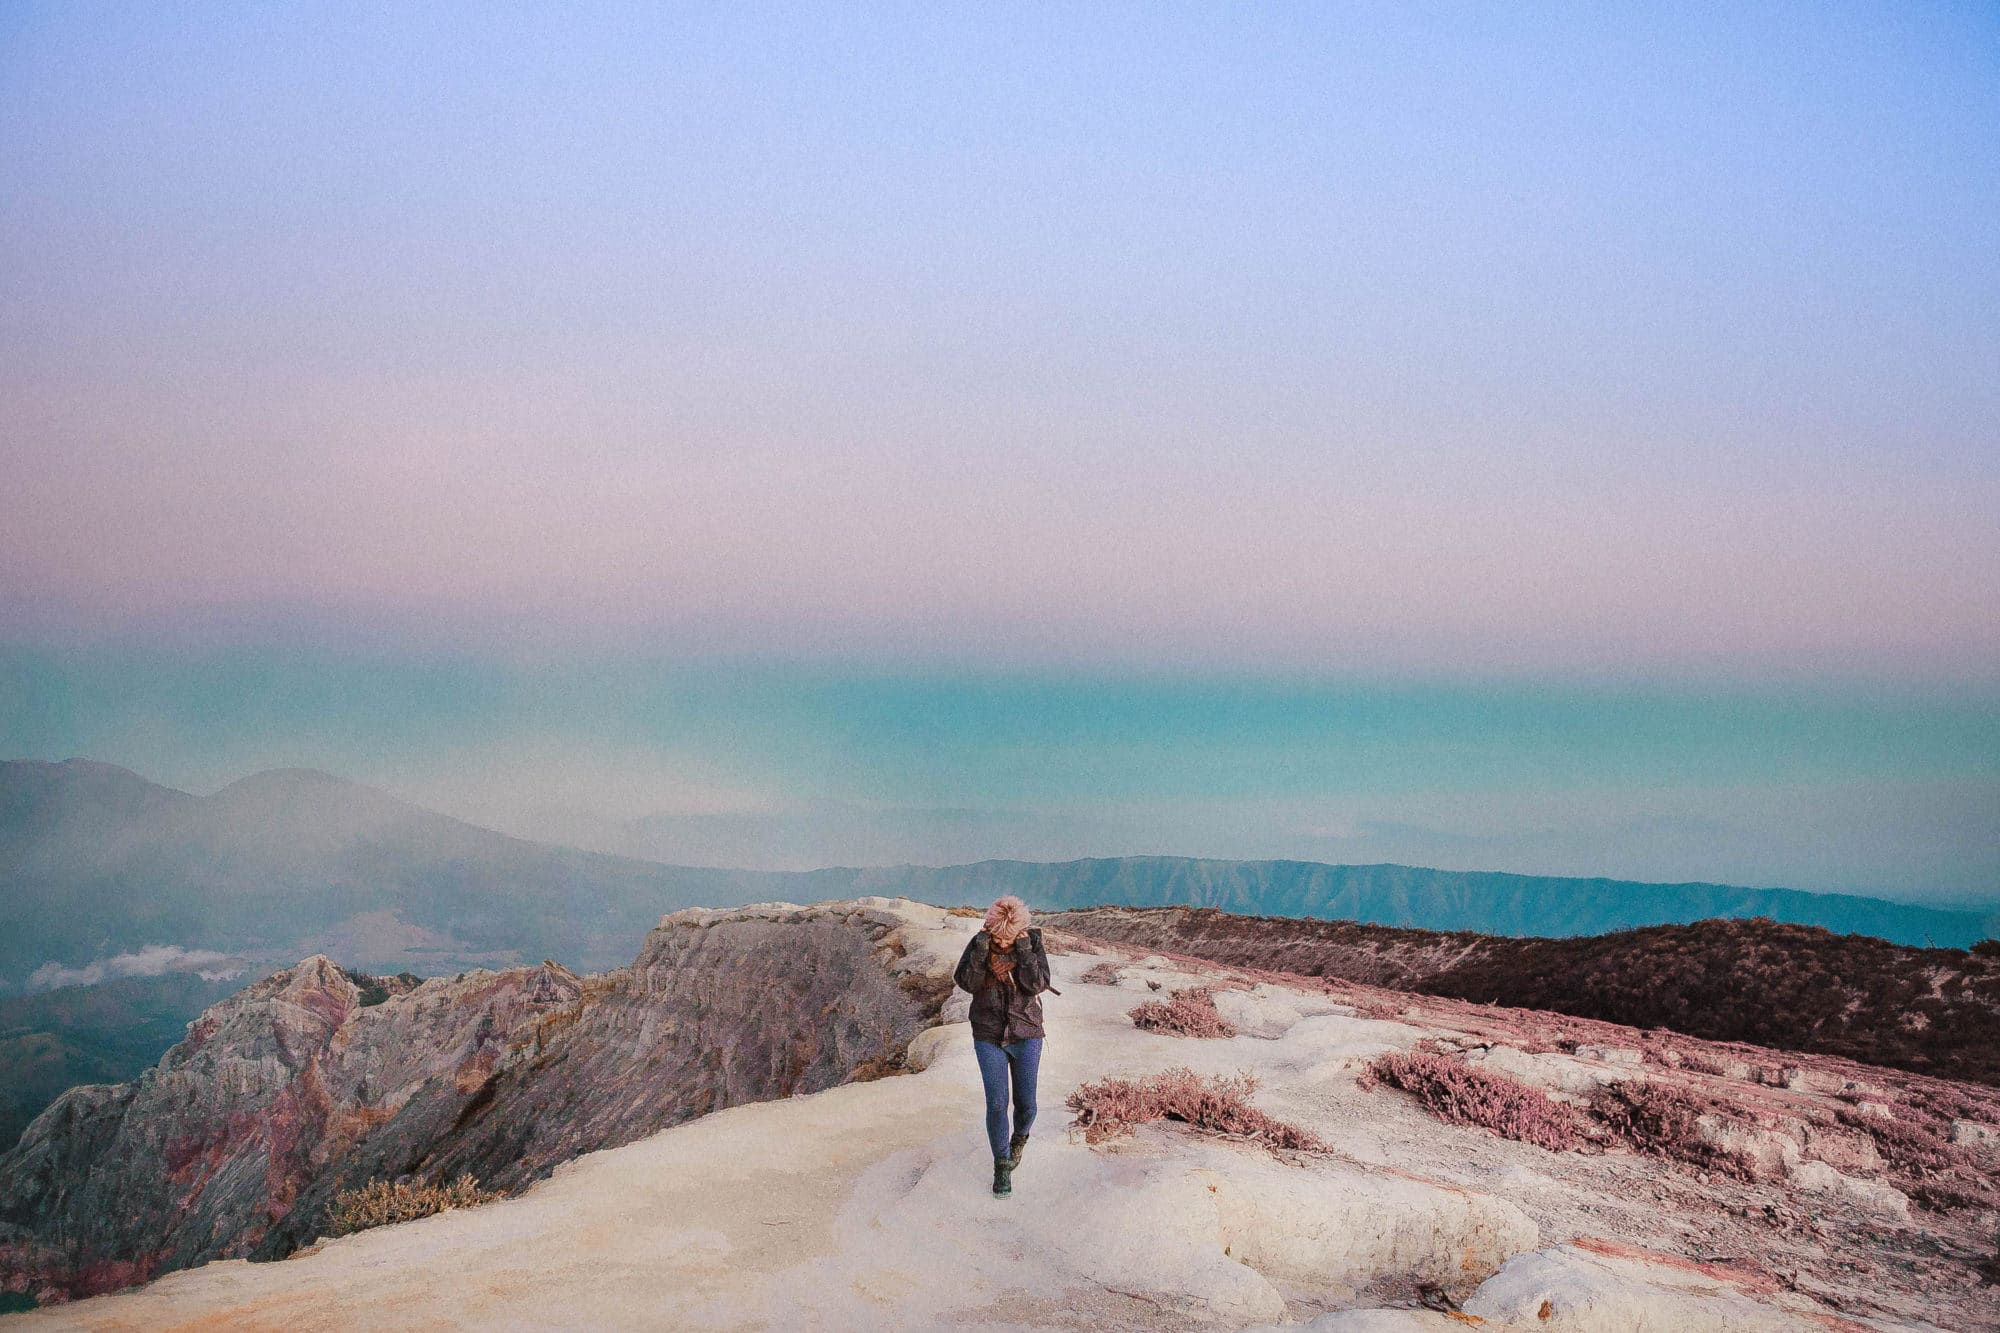 kawah ijen indonesia walking on the moon landscape beautiful nature sunrise tour pink sky pastels